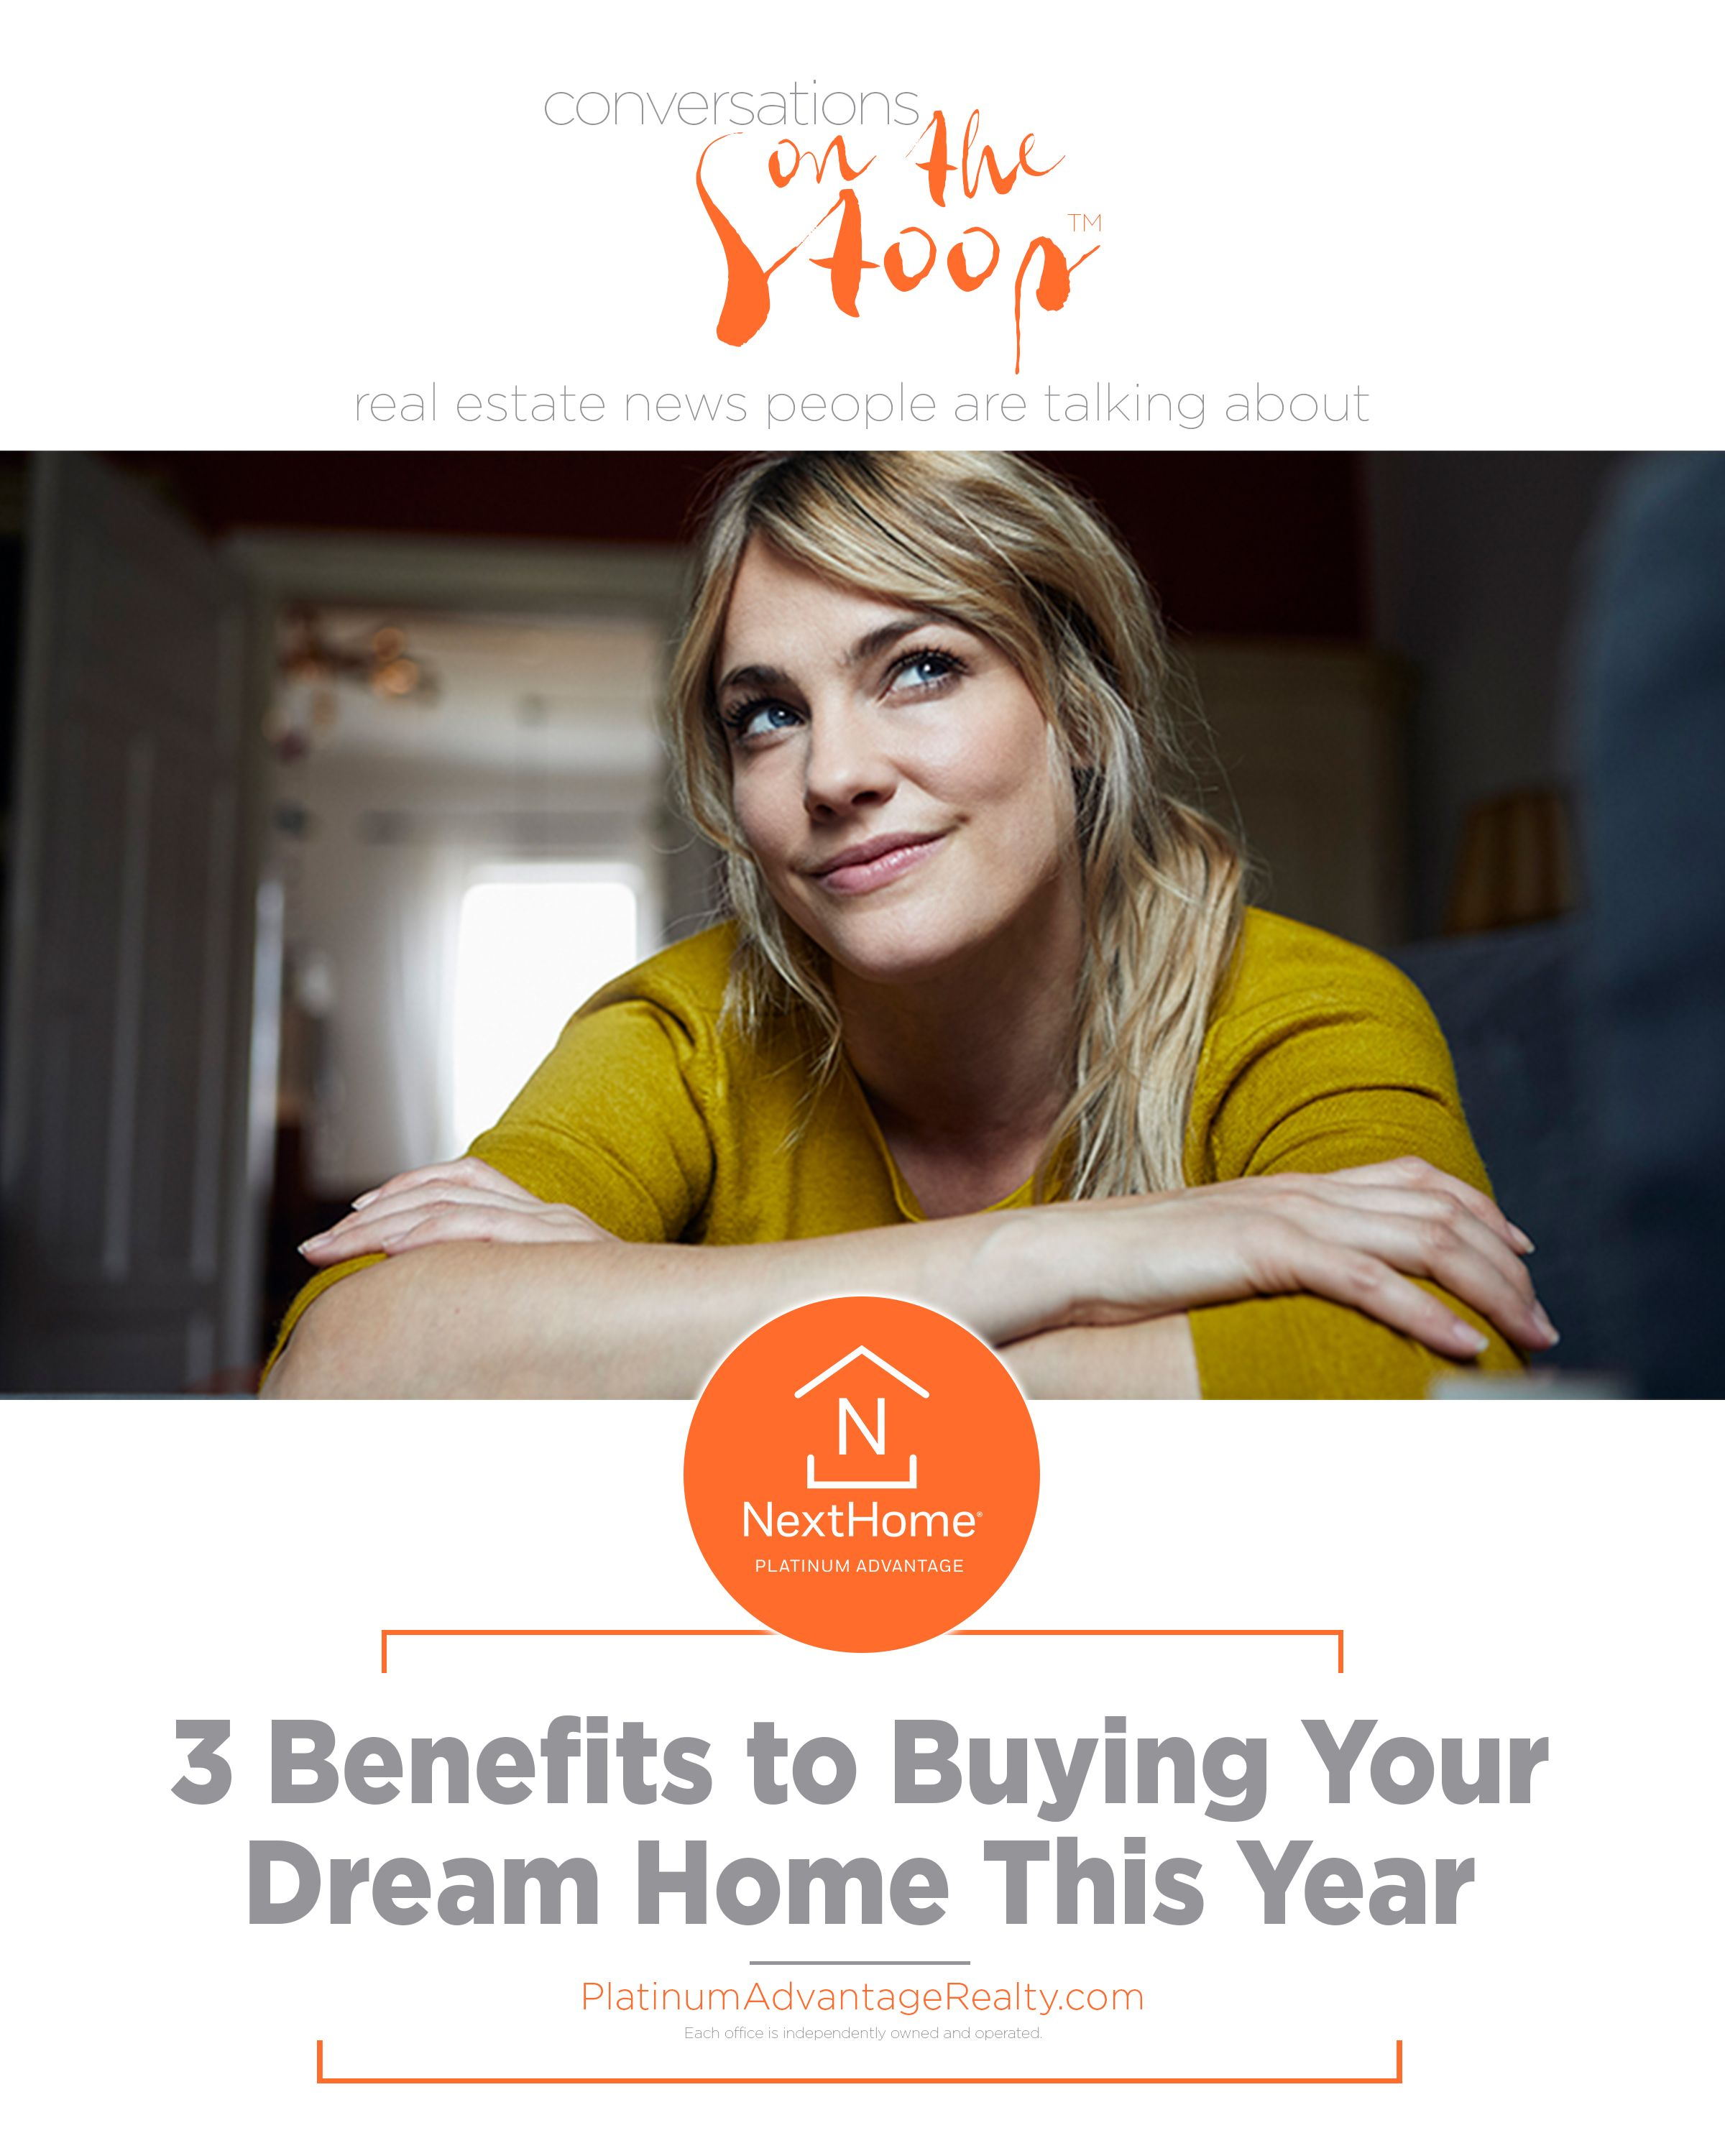 Click image to read full article real estate real estate